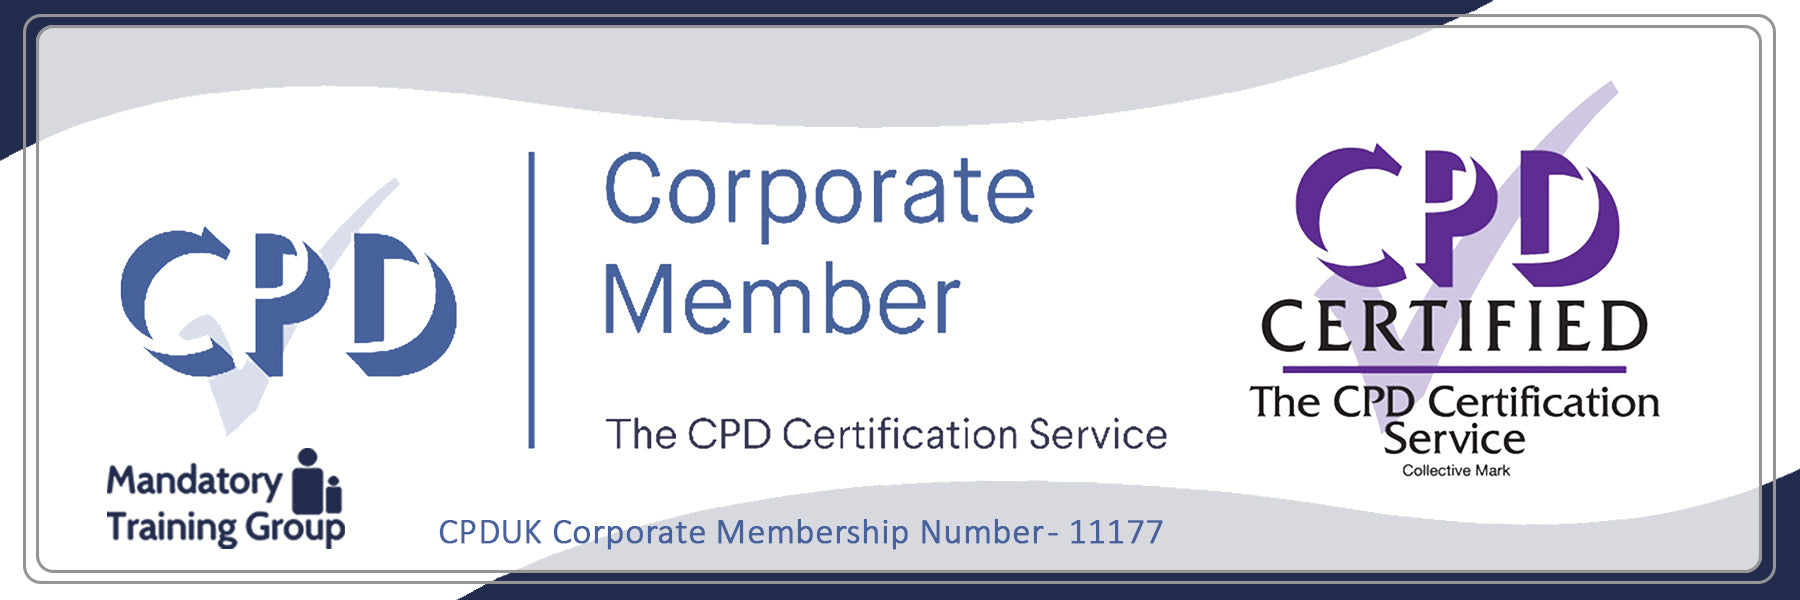 Pressure Ulcer Prevention - e-Learning Course - CPDUK Certified - The Mandatory Training Group UK -